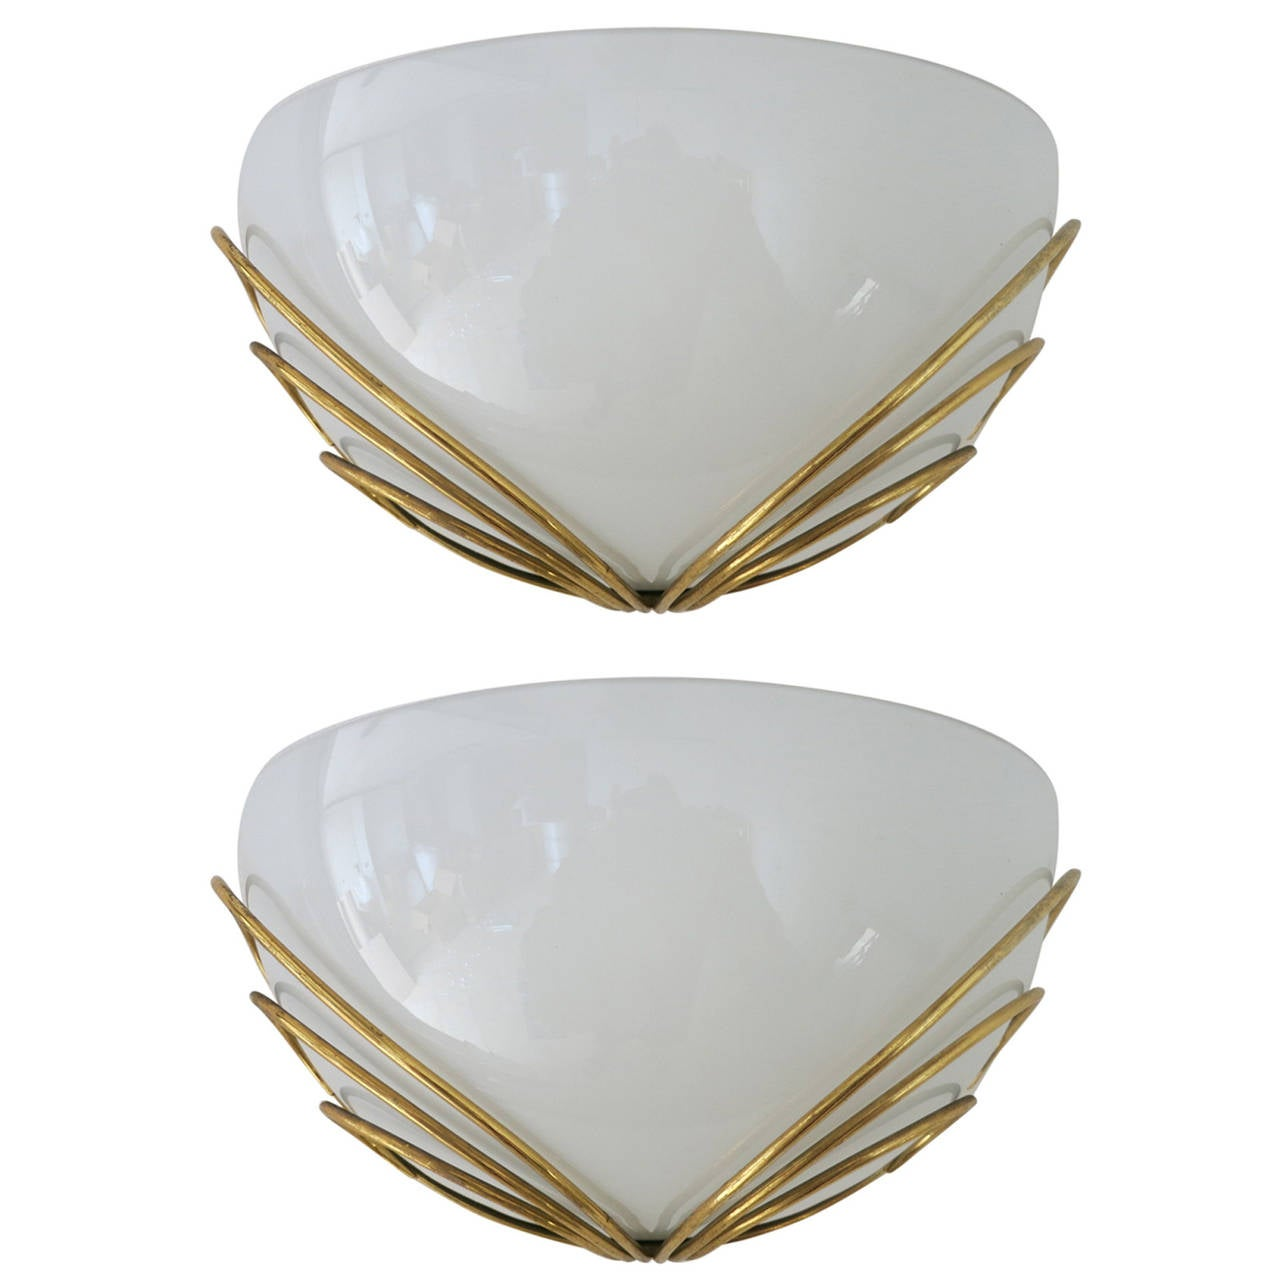 Pair of Art Deco Style Murano Sconces